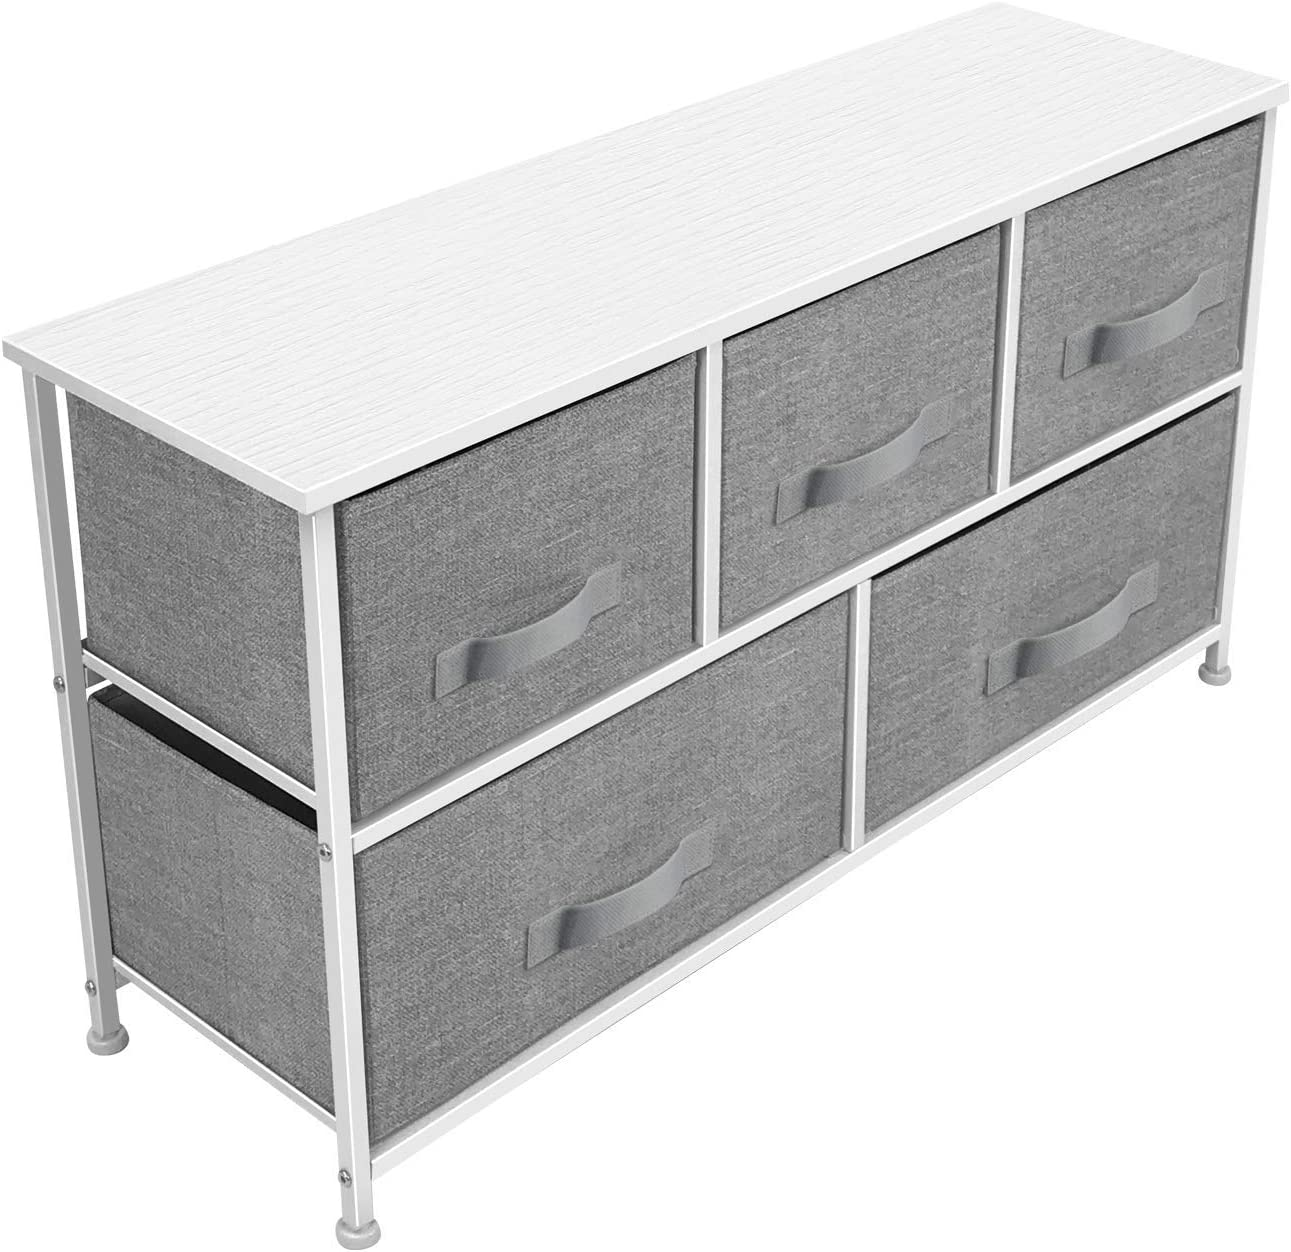 Sorbus Dresser with 5 Drawers - Furniture Storage Chest Tower Unit for Bedroom, Hallway, Closet, Office Organization - Steel Frame, Wood Top, Easy Pull Fabric Bins White Gray